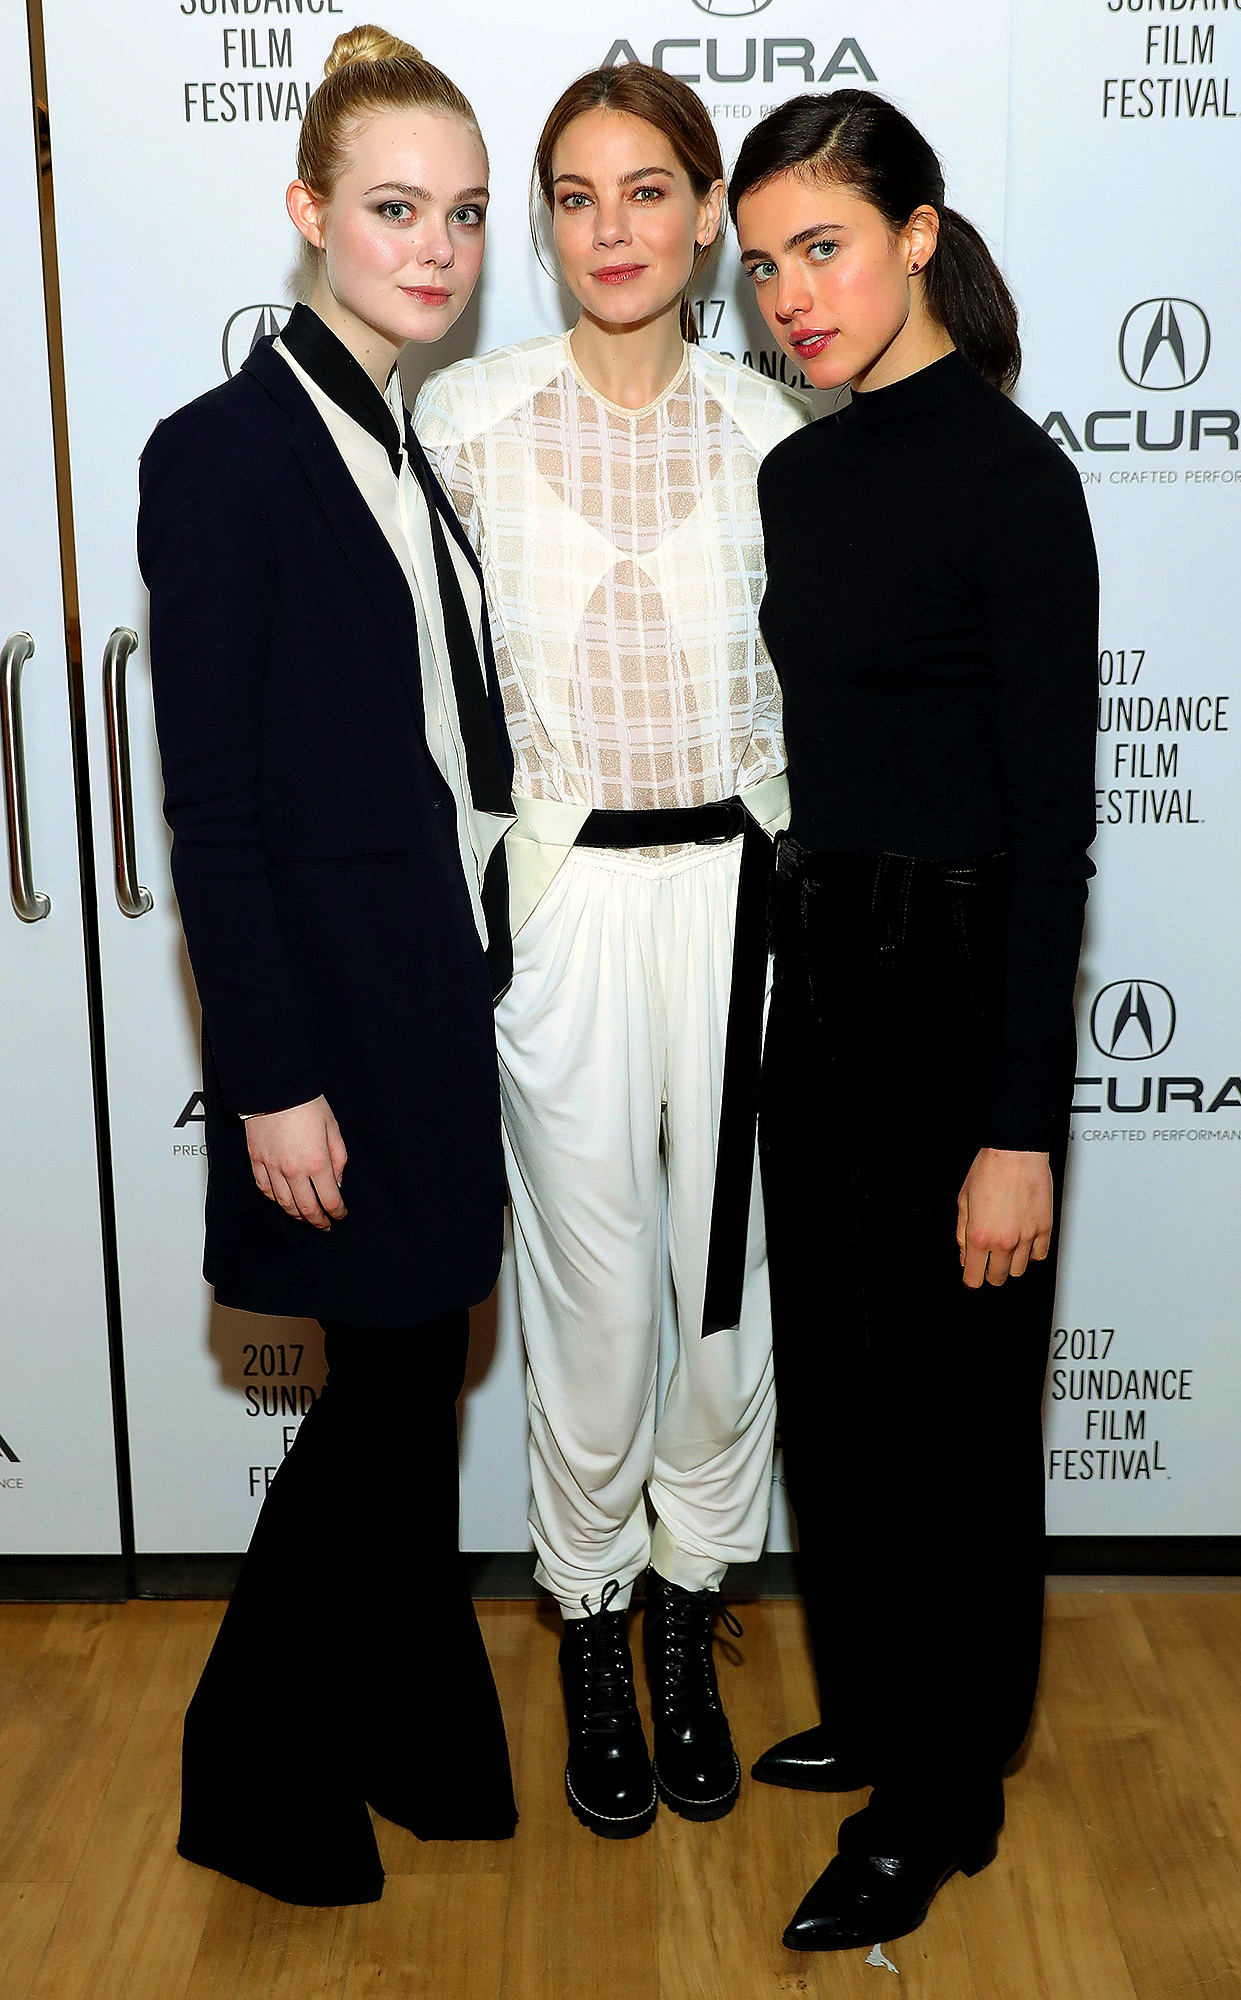 """Sidney Hall"" Party At The Acura Studio At Sundance Film Festival 2017 - 2017 Park City"